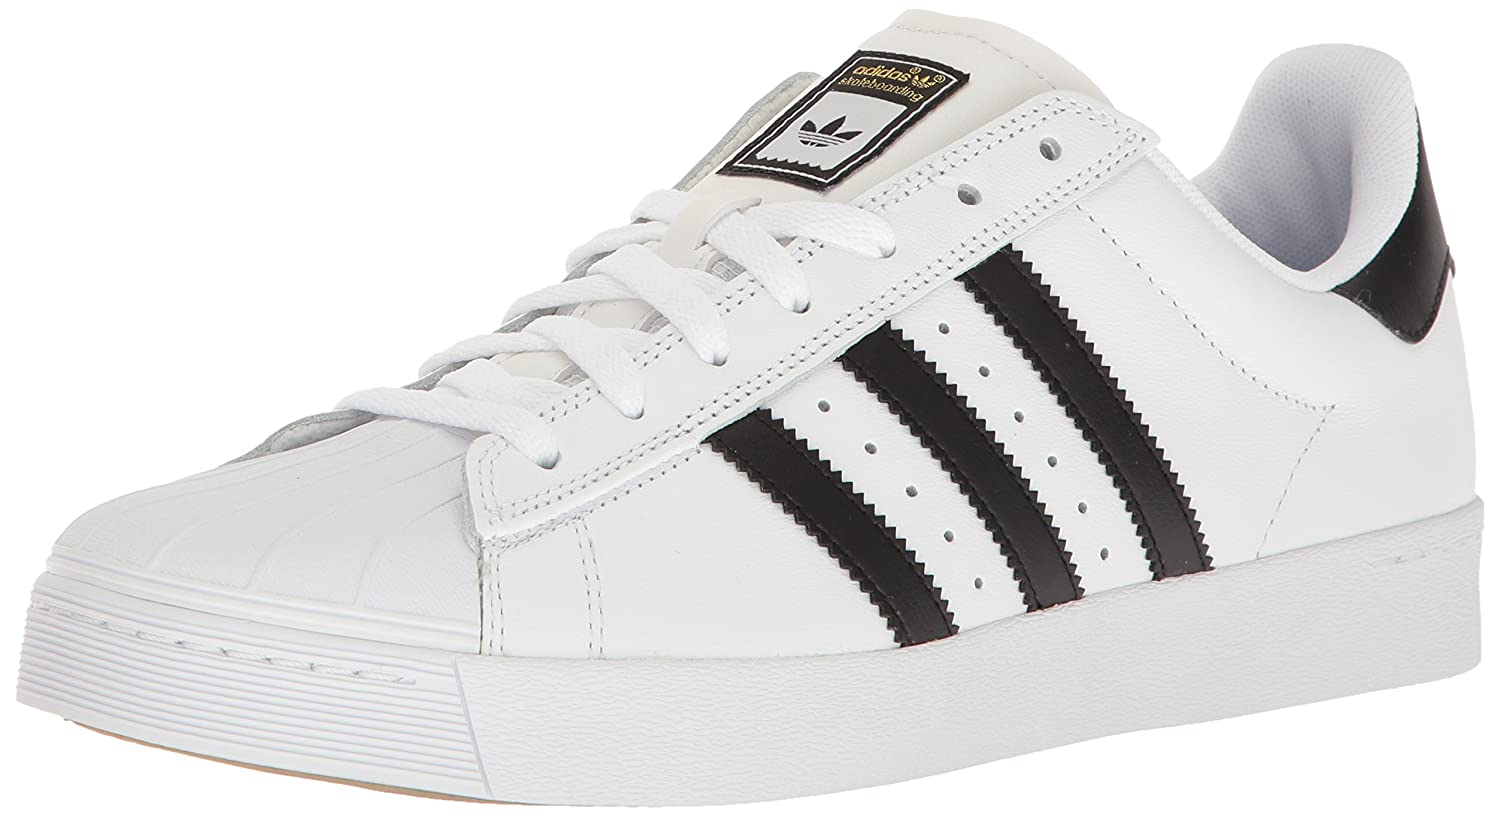 adidas Originals Men's Superstar Vulc Adv Shoes B016PACHFE 12 M US|White/Core Black/White